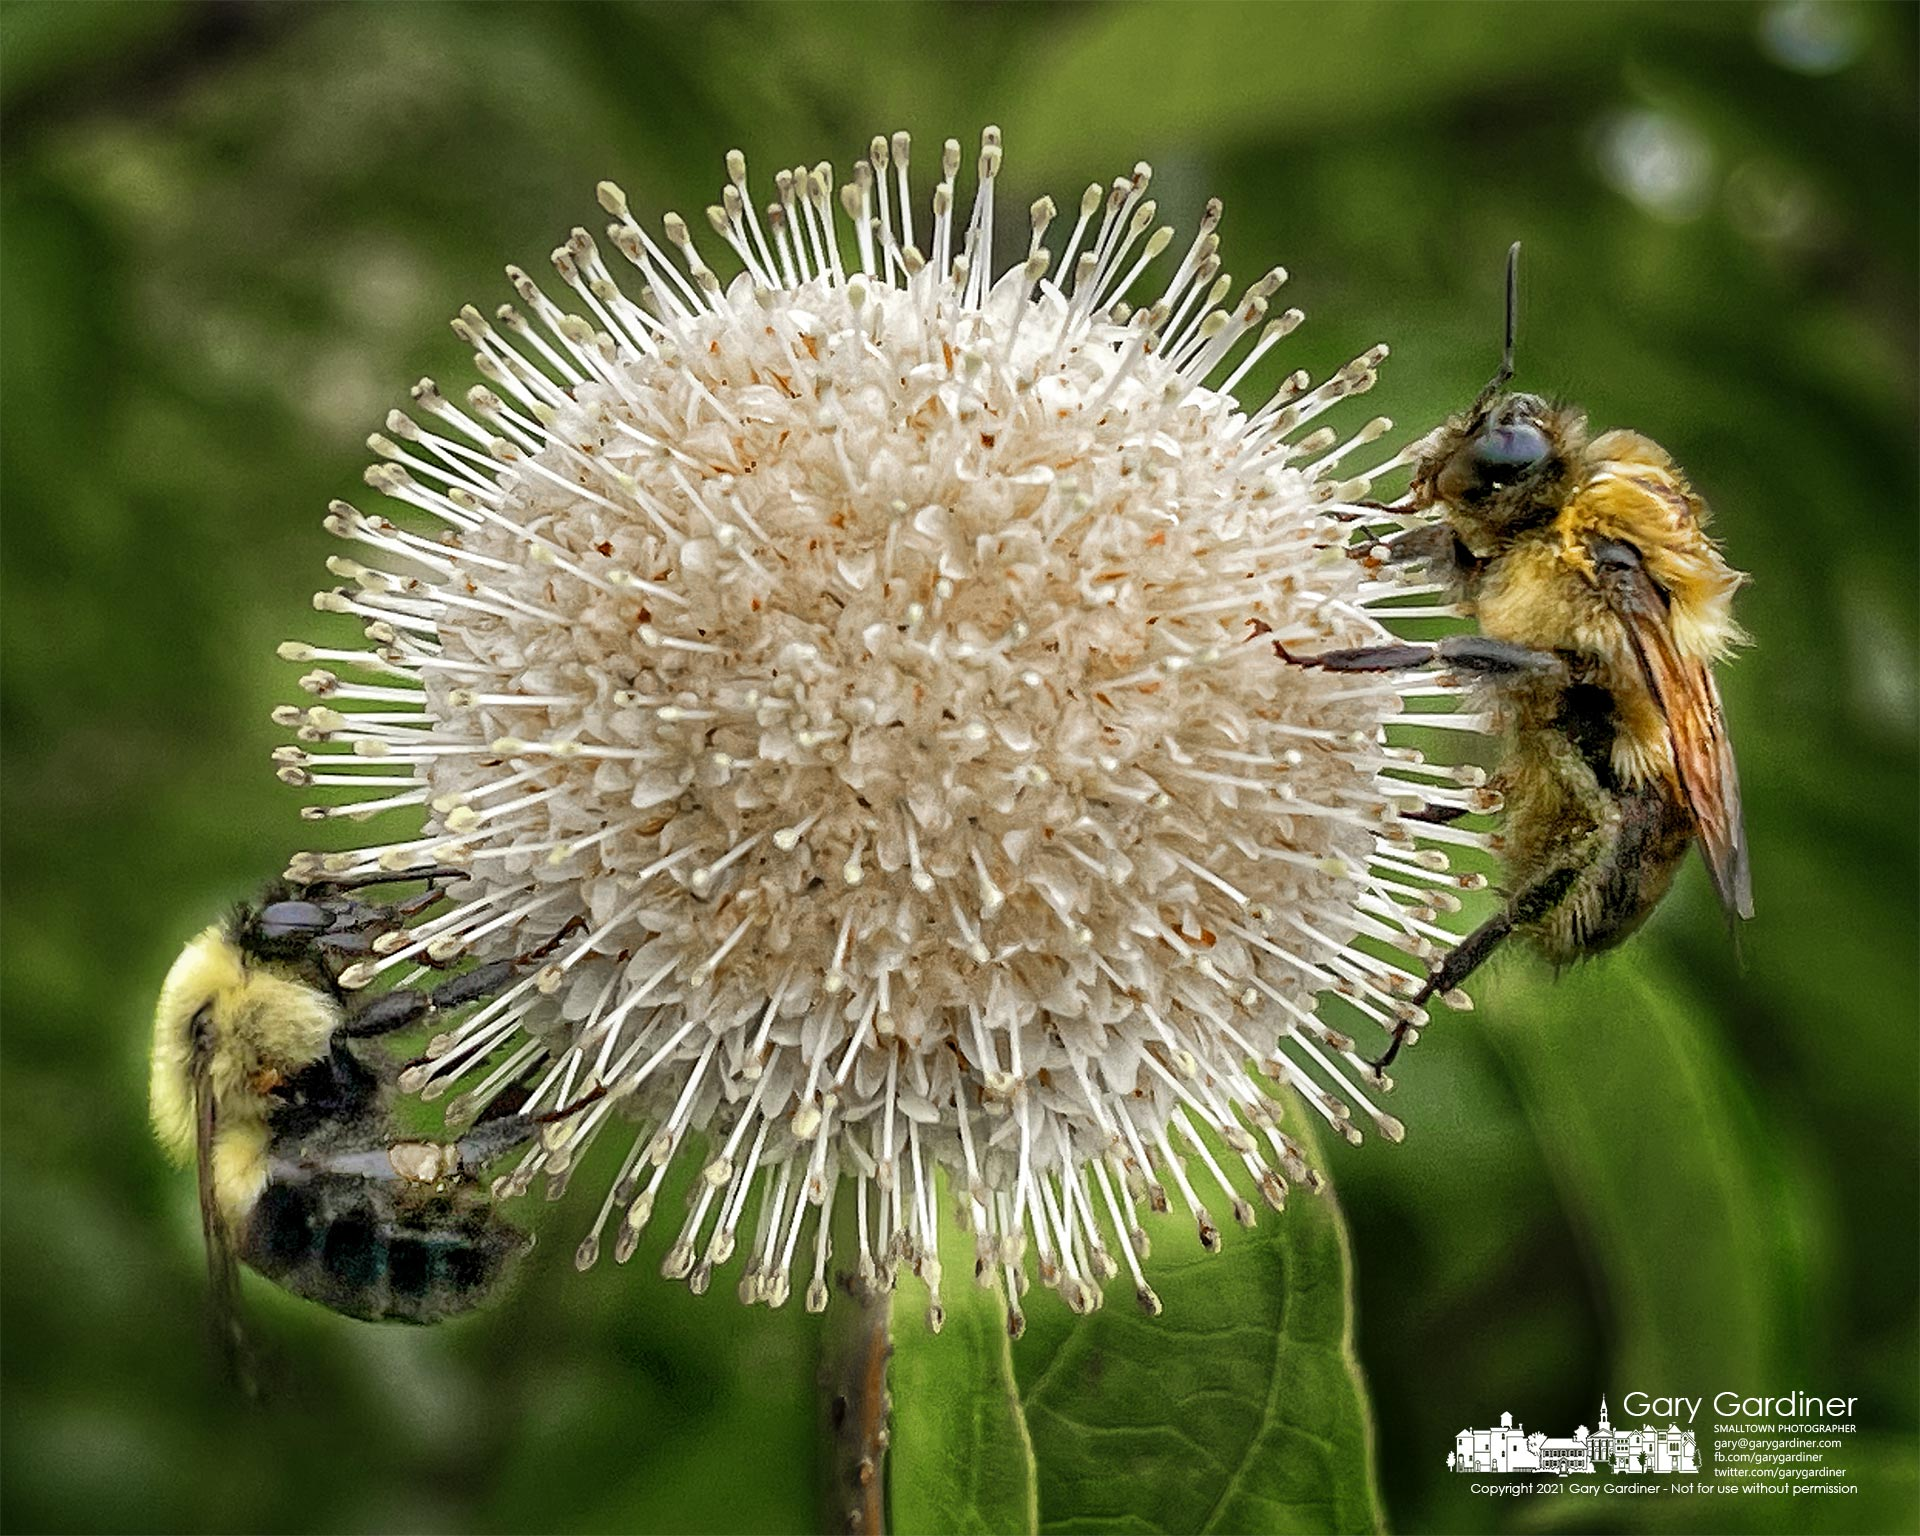 A pair of bees collect nectar and pollen from a buttonbush growing along the edge of the wetlands at Highlands Aquatic Center. MyF inal Photo for July 1, 2021.